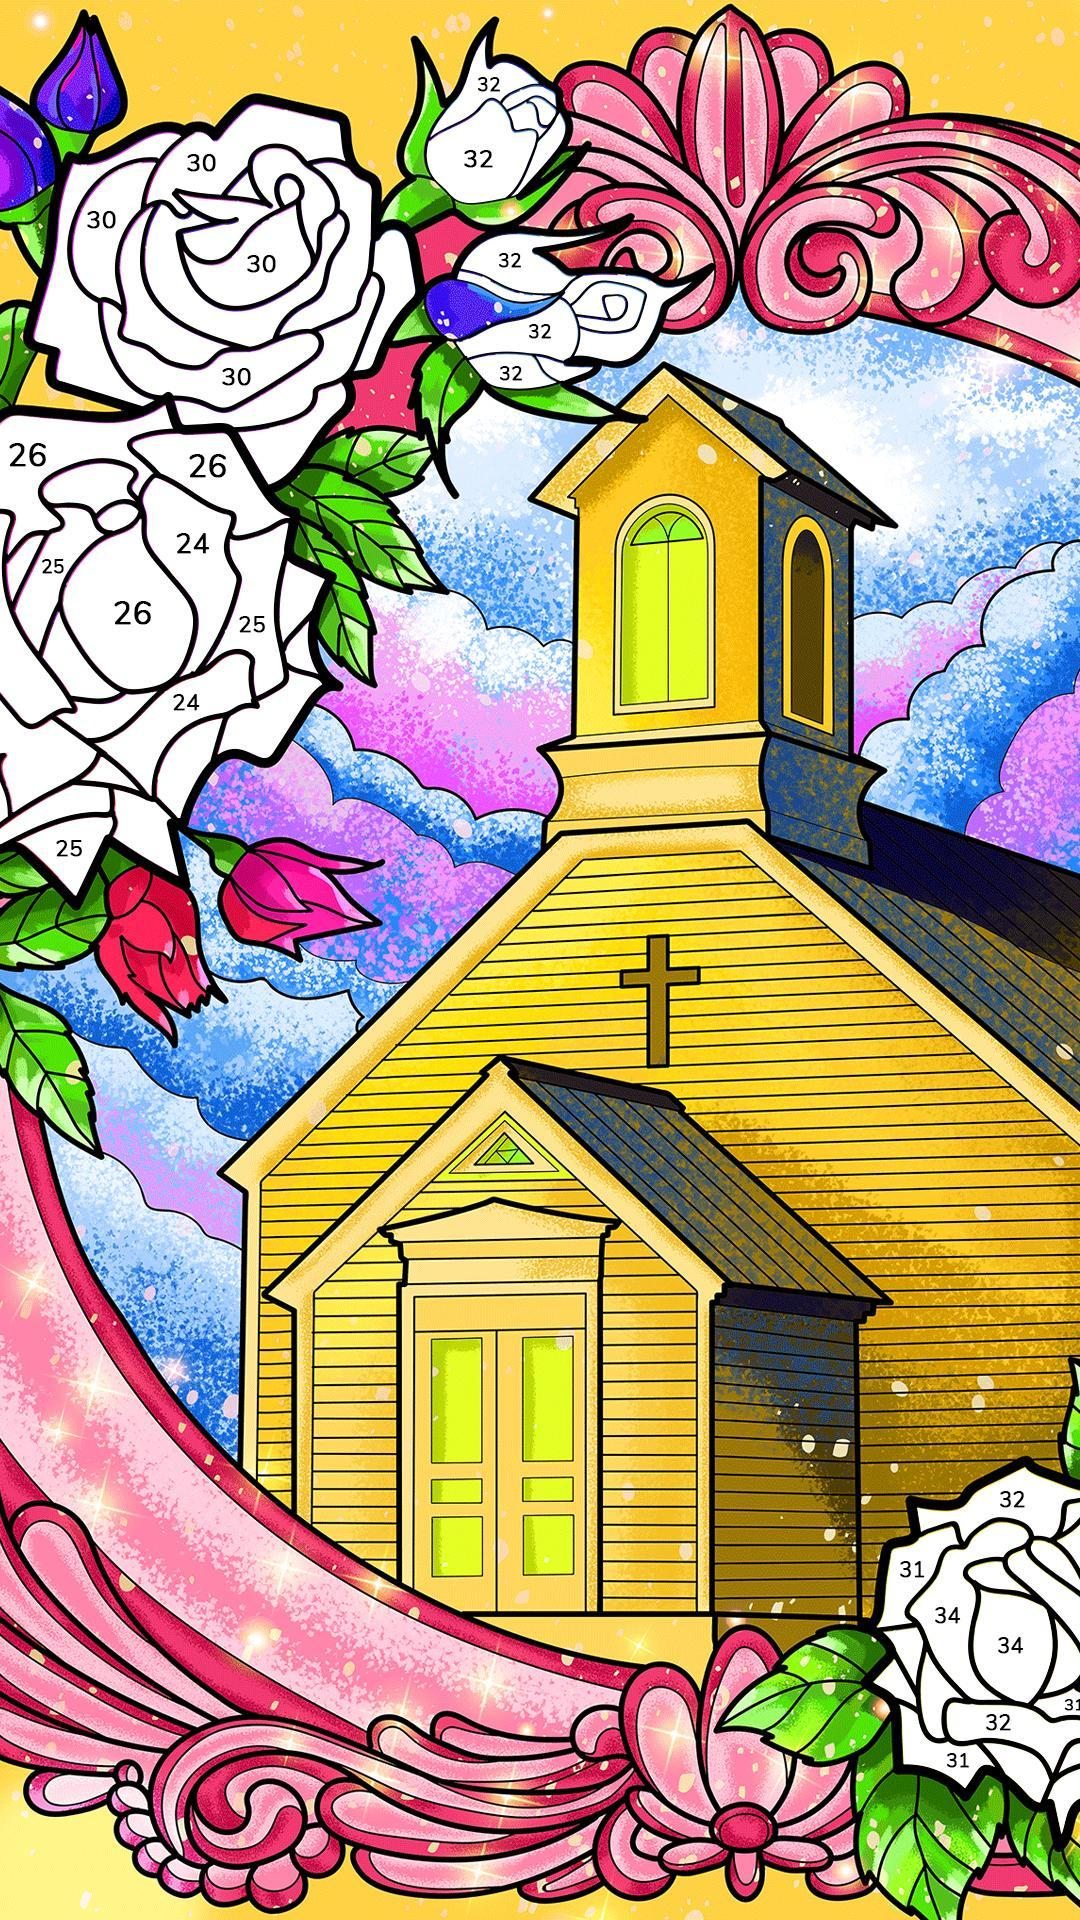 Bible Coloring Paint by Number, Free Bible Games 2.1.14 Screenshot 7